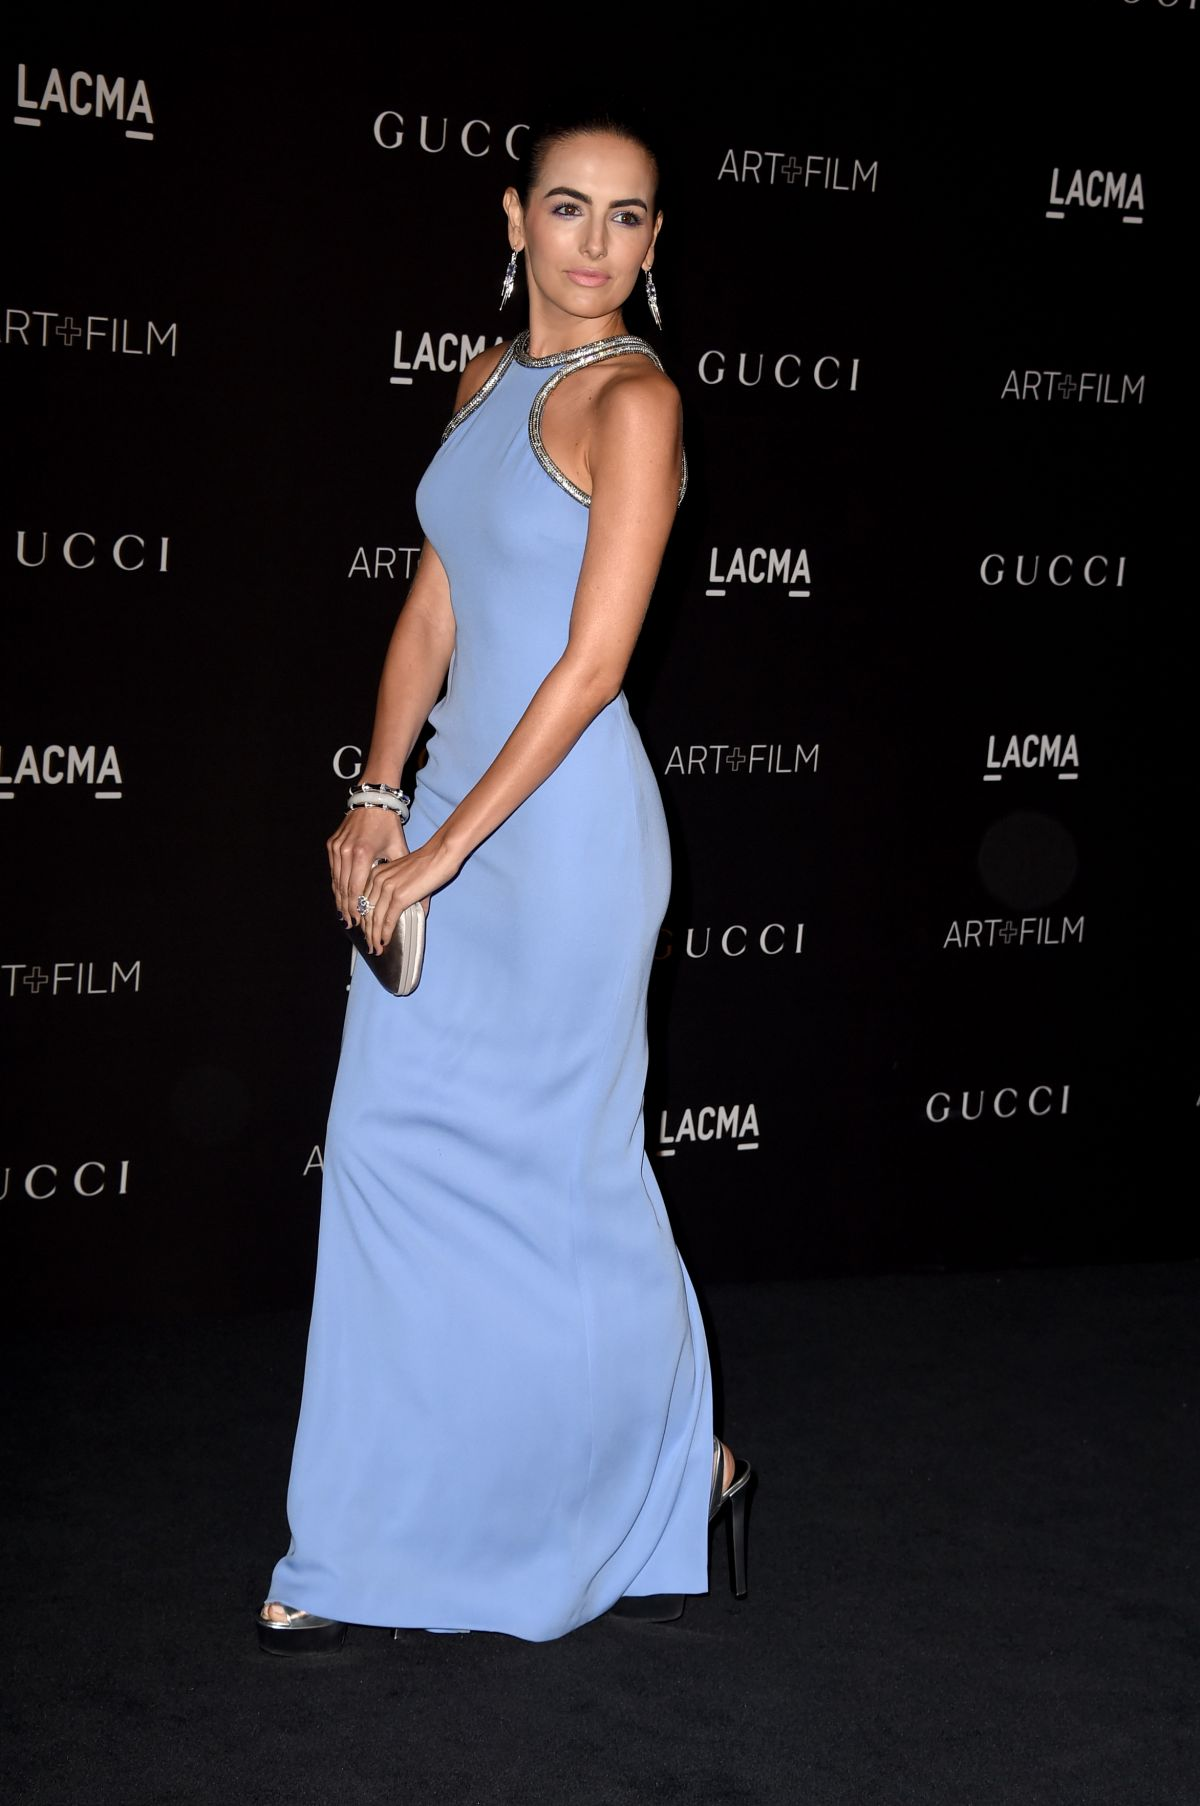 camilla-belle-at-2014-lacma-art-film-gala-in-los-angeles_11